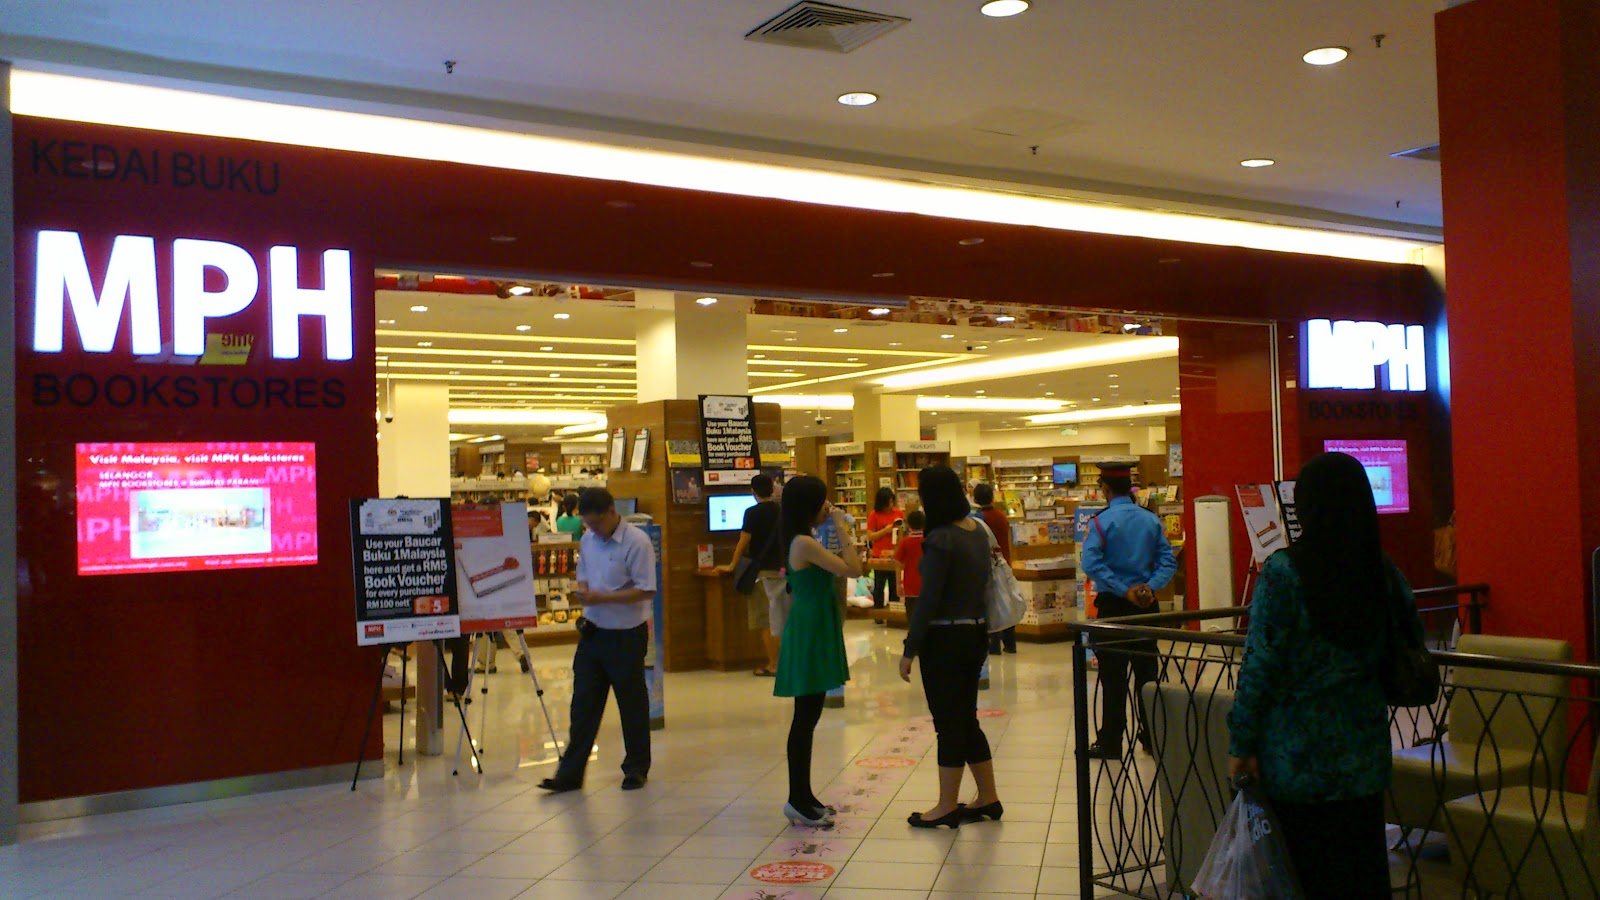 Darren の Blogspot Mid Valley Megamall 06 02 2012